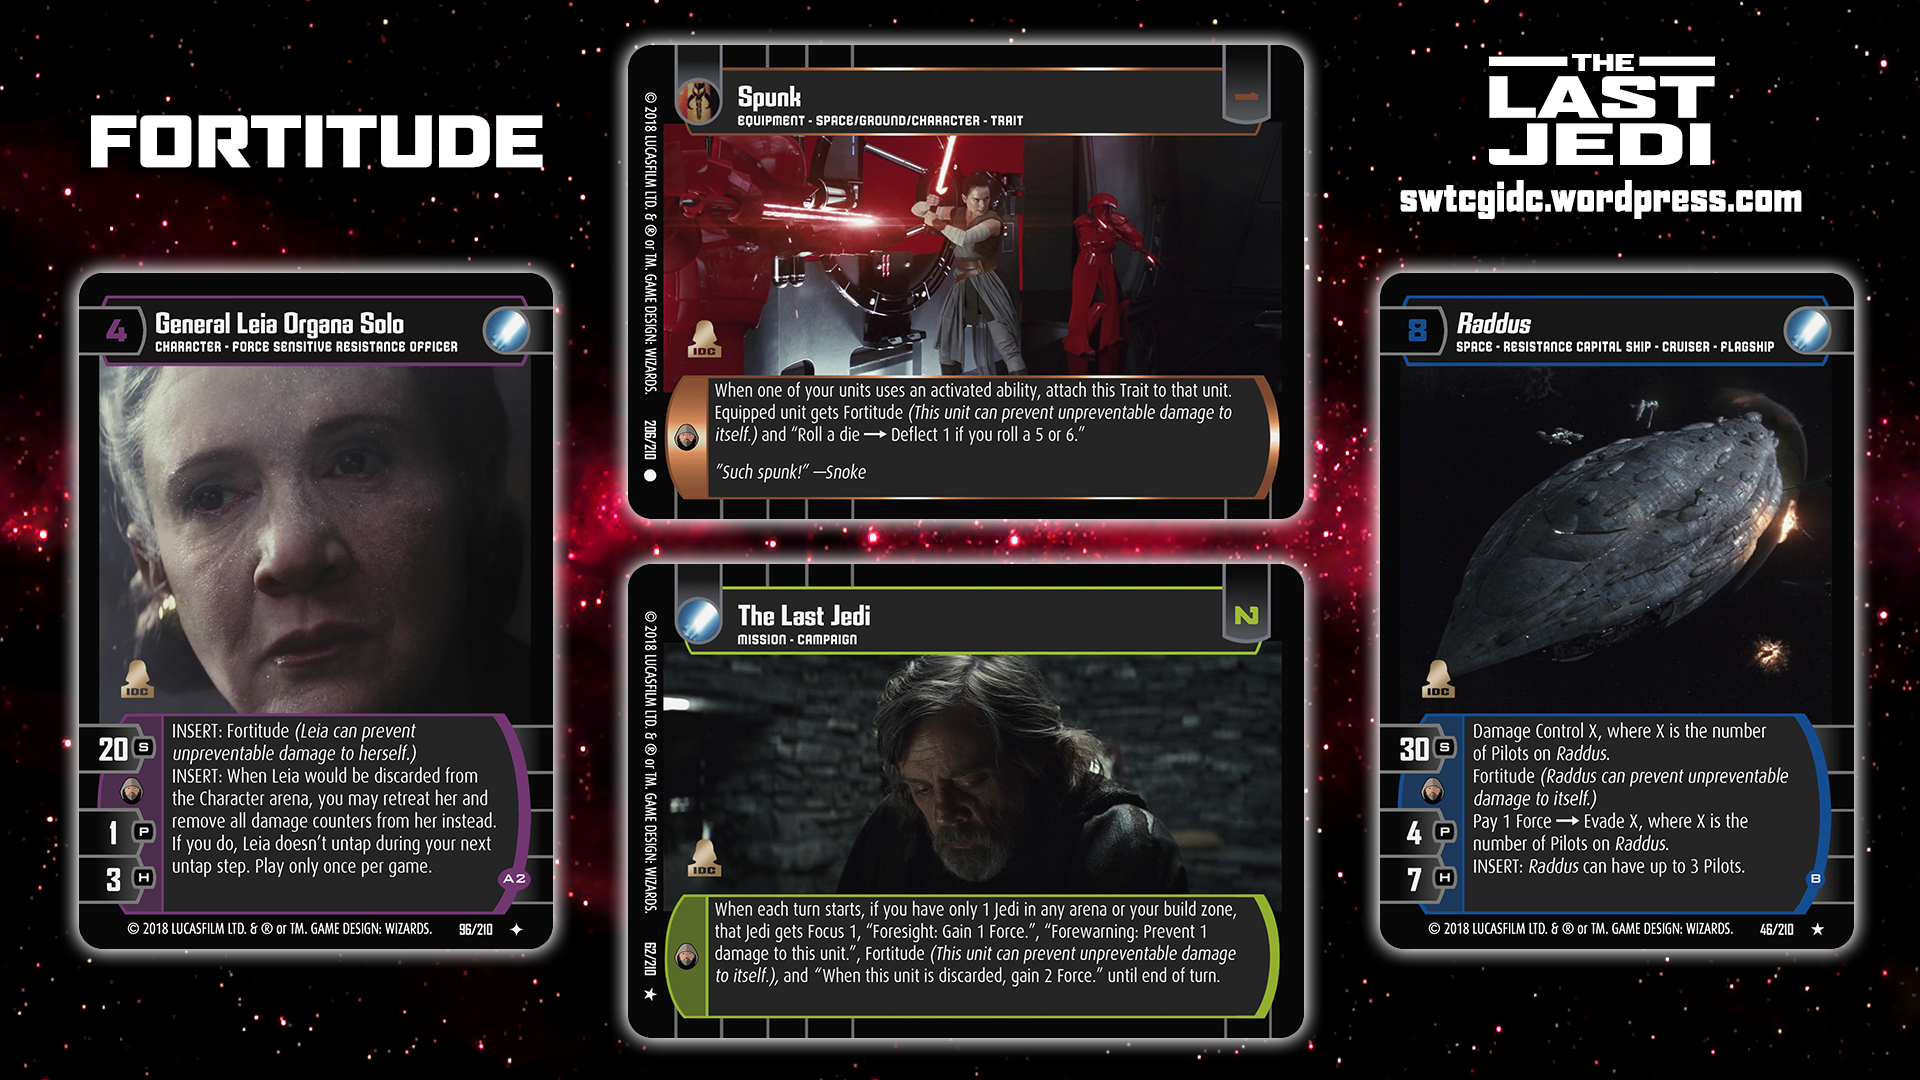 Star Wars Trading Card Game Tlj Wallpaper 4 Fortitude Star Wars Trading Card Game Independent Development Committee